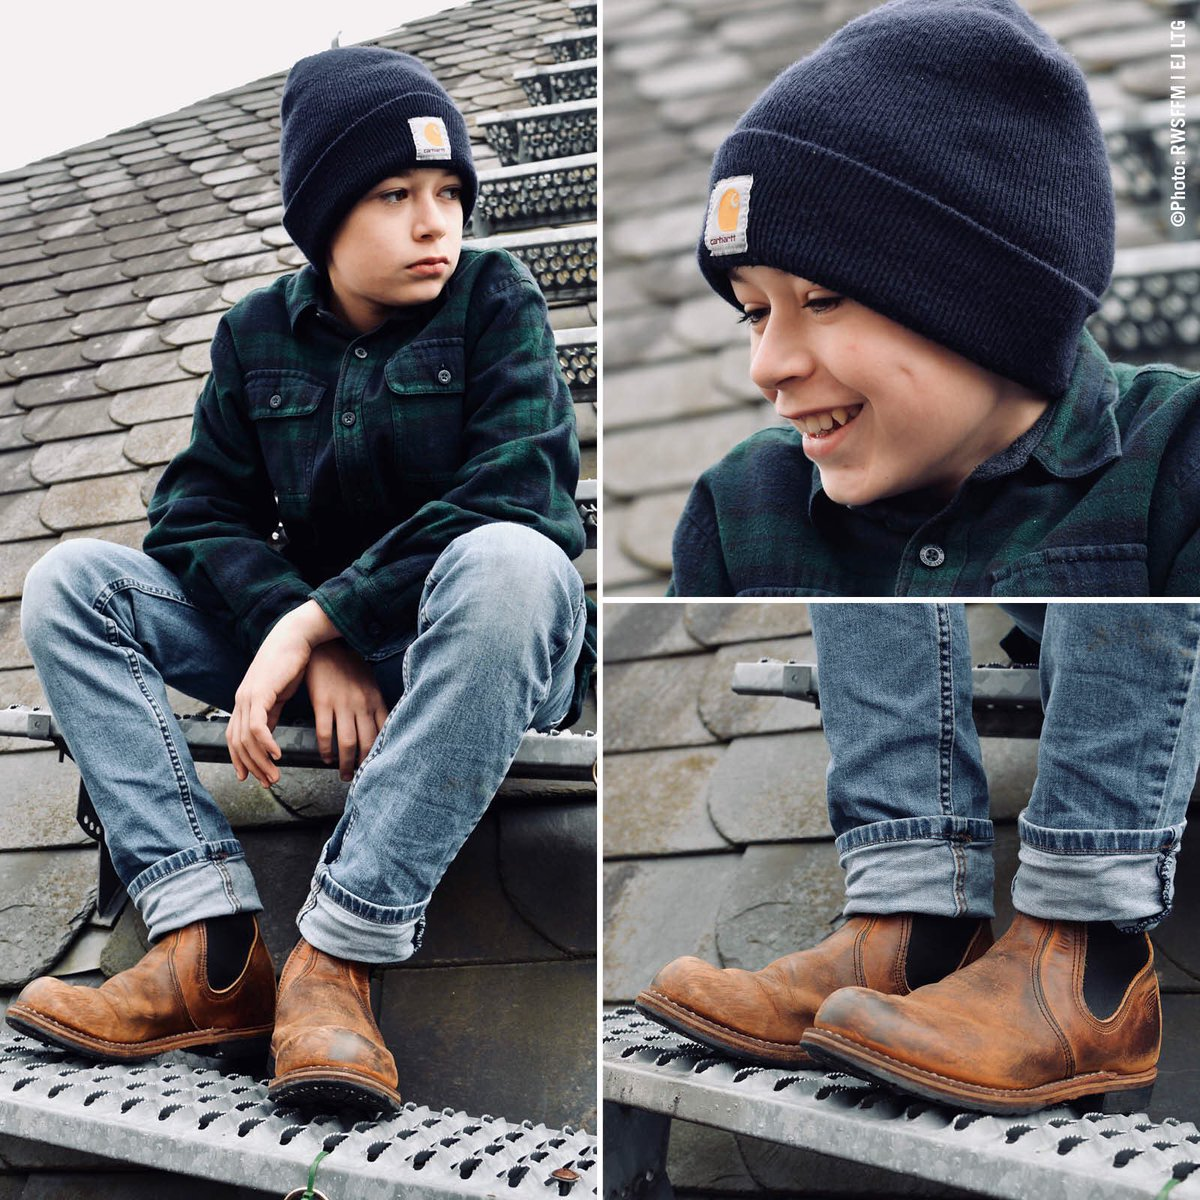 """f063ccd66f0 ... Circle"""": a nice worn in Chelsea Ranger #2917 made of Briar Oil Slick  Leather. Little Levi hopes that his feet will not grow so fast ."""